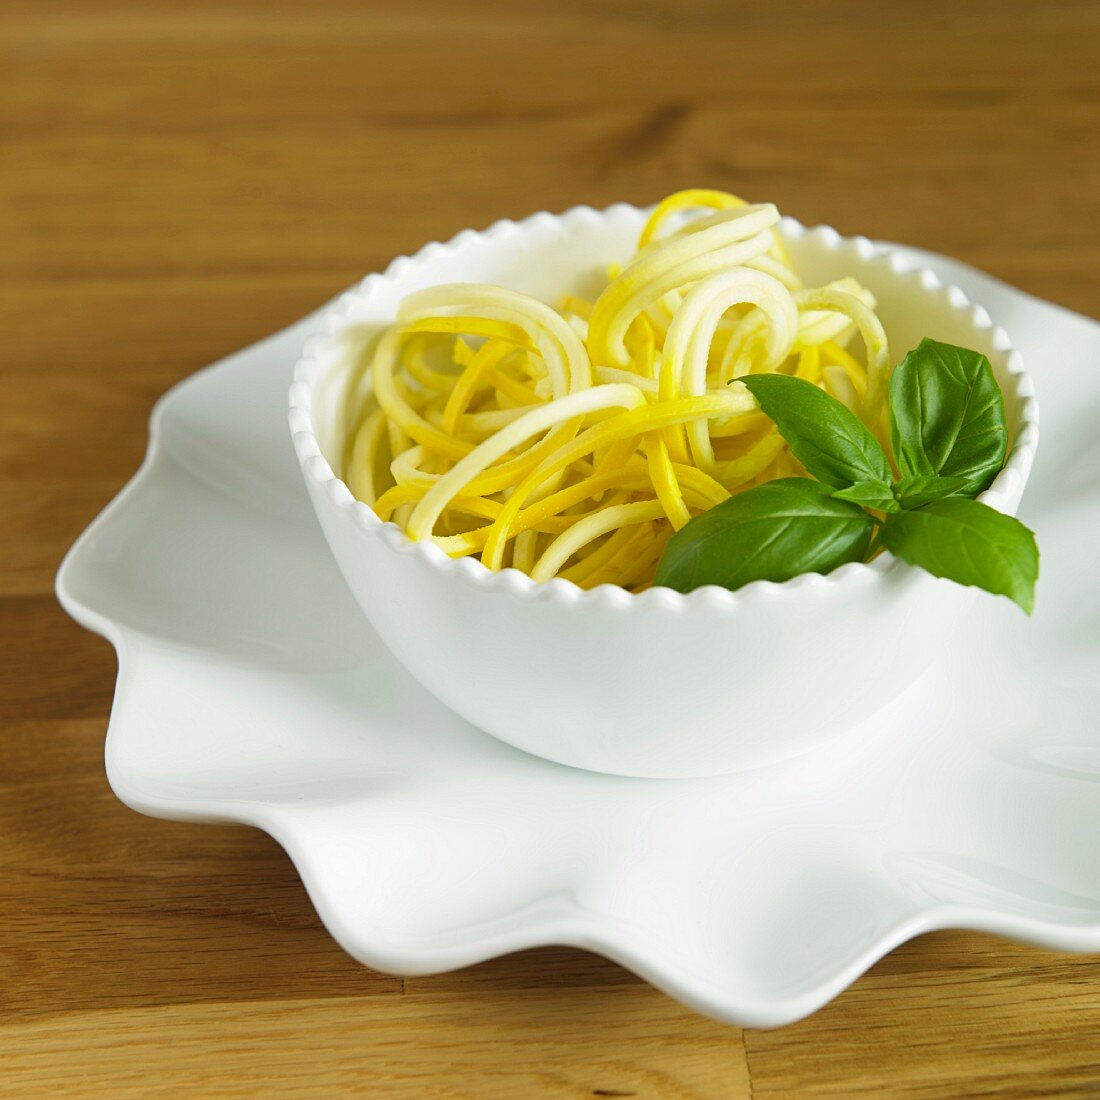 Yellow courgette spaghetti with basil in a white bowl